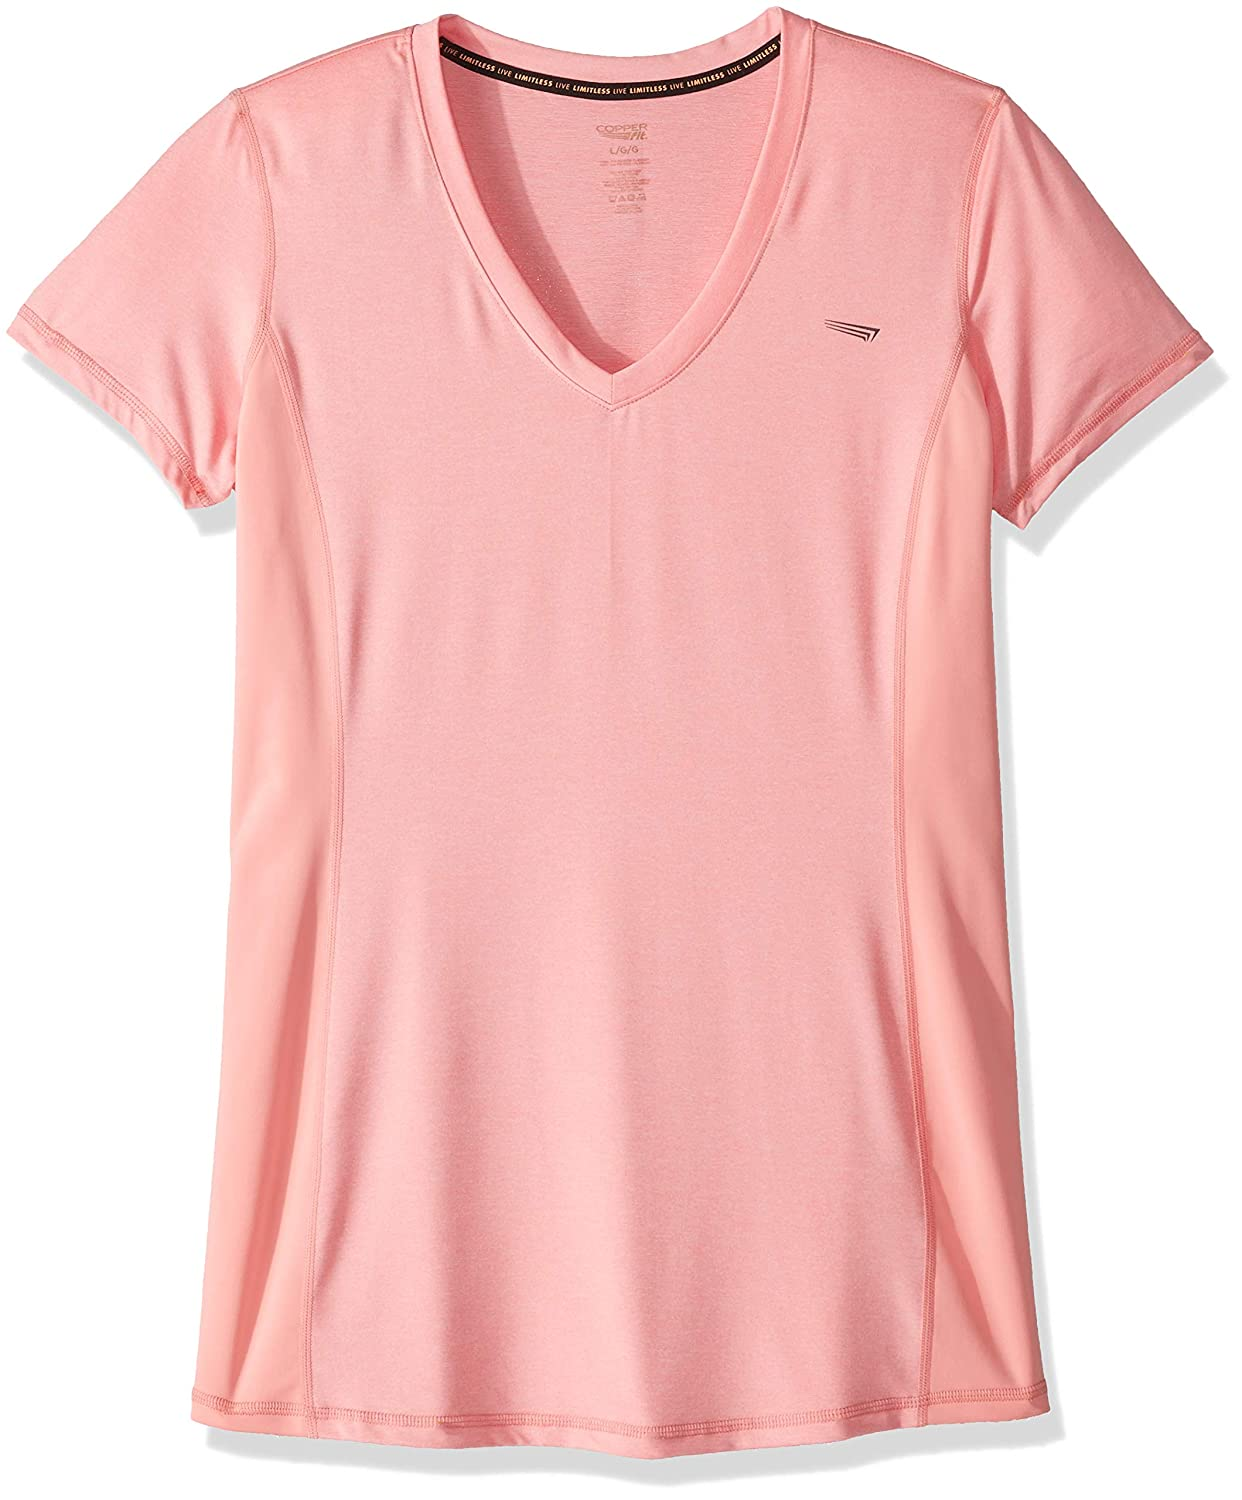 e44f251aa5 Amazon.com: Copper Fit Women's Comfort Compression Side Panel Vneck Tee:  Clothing